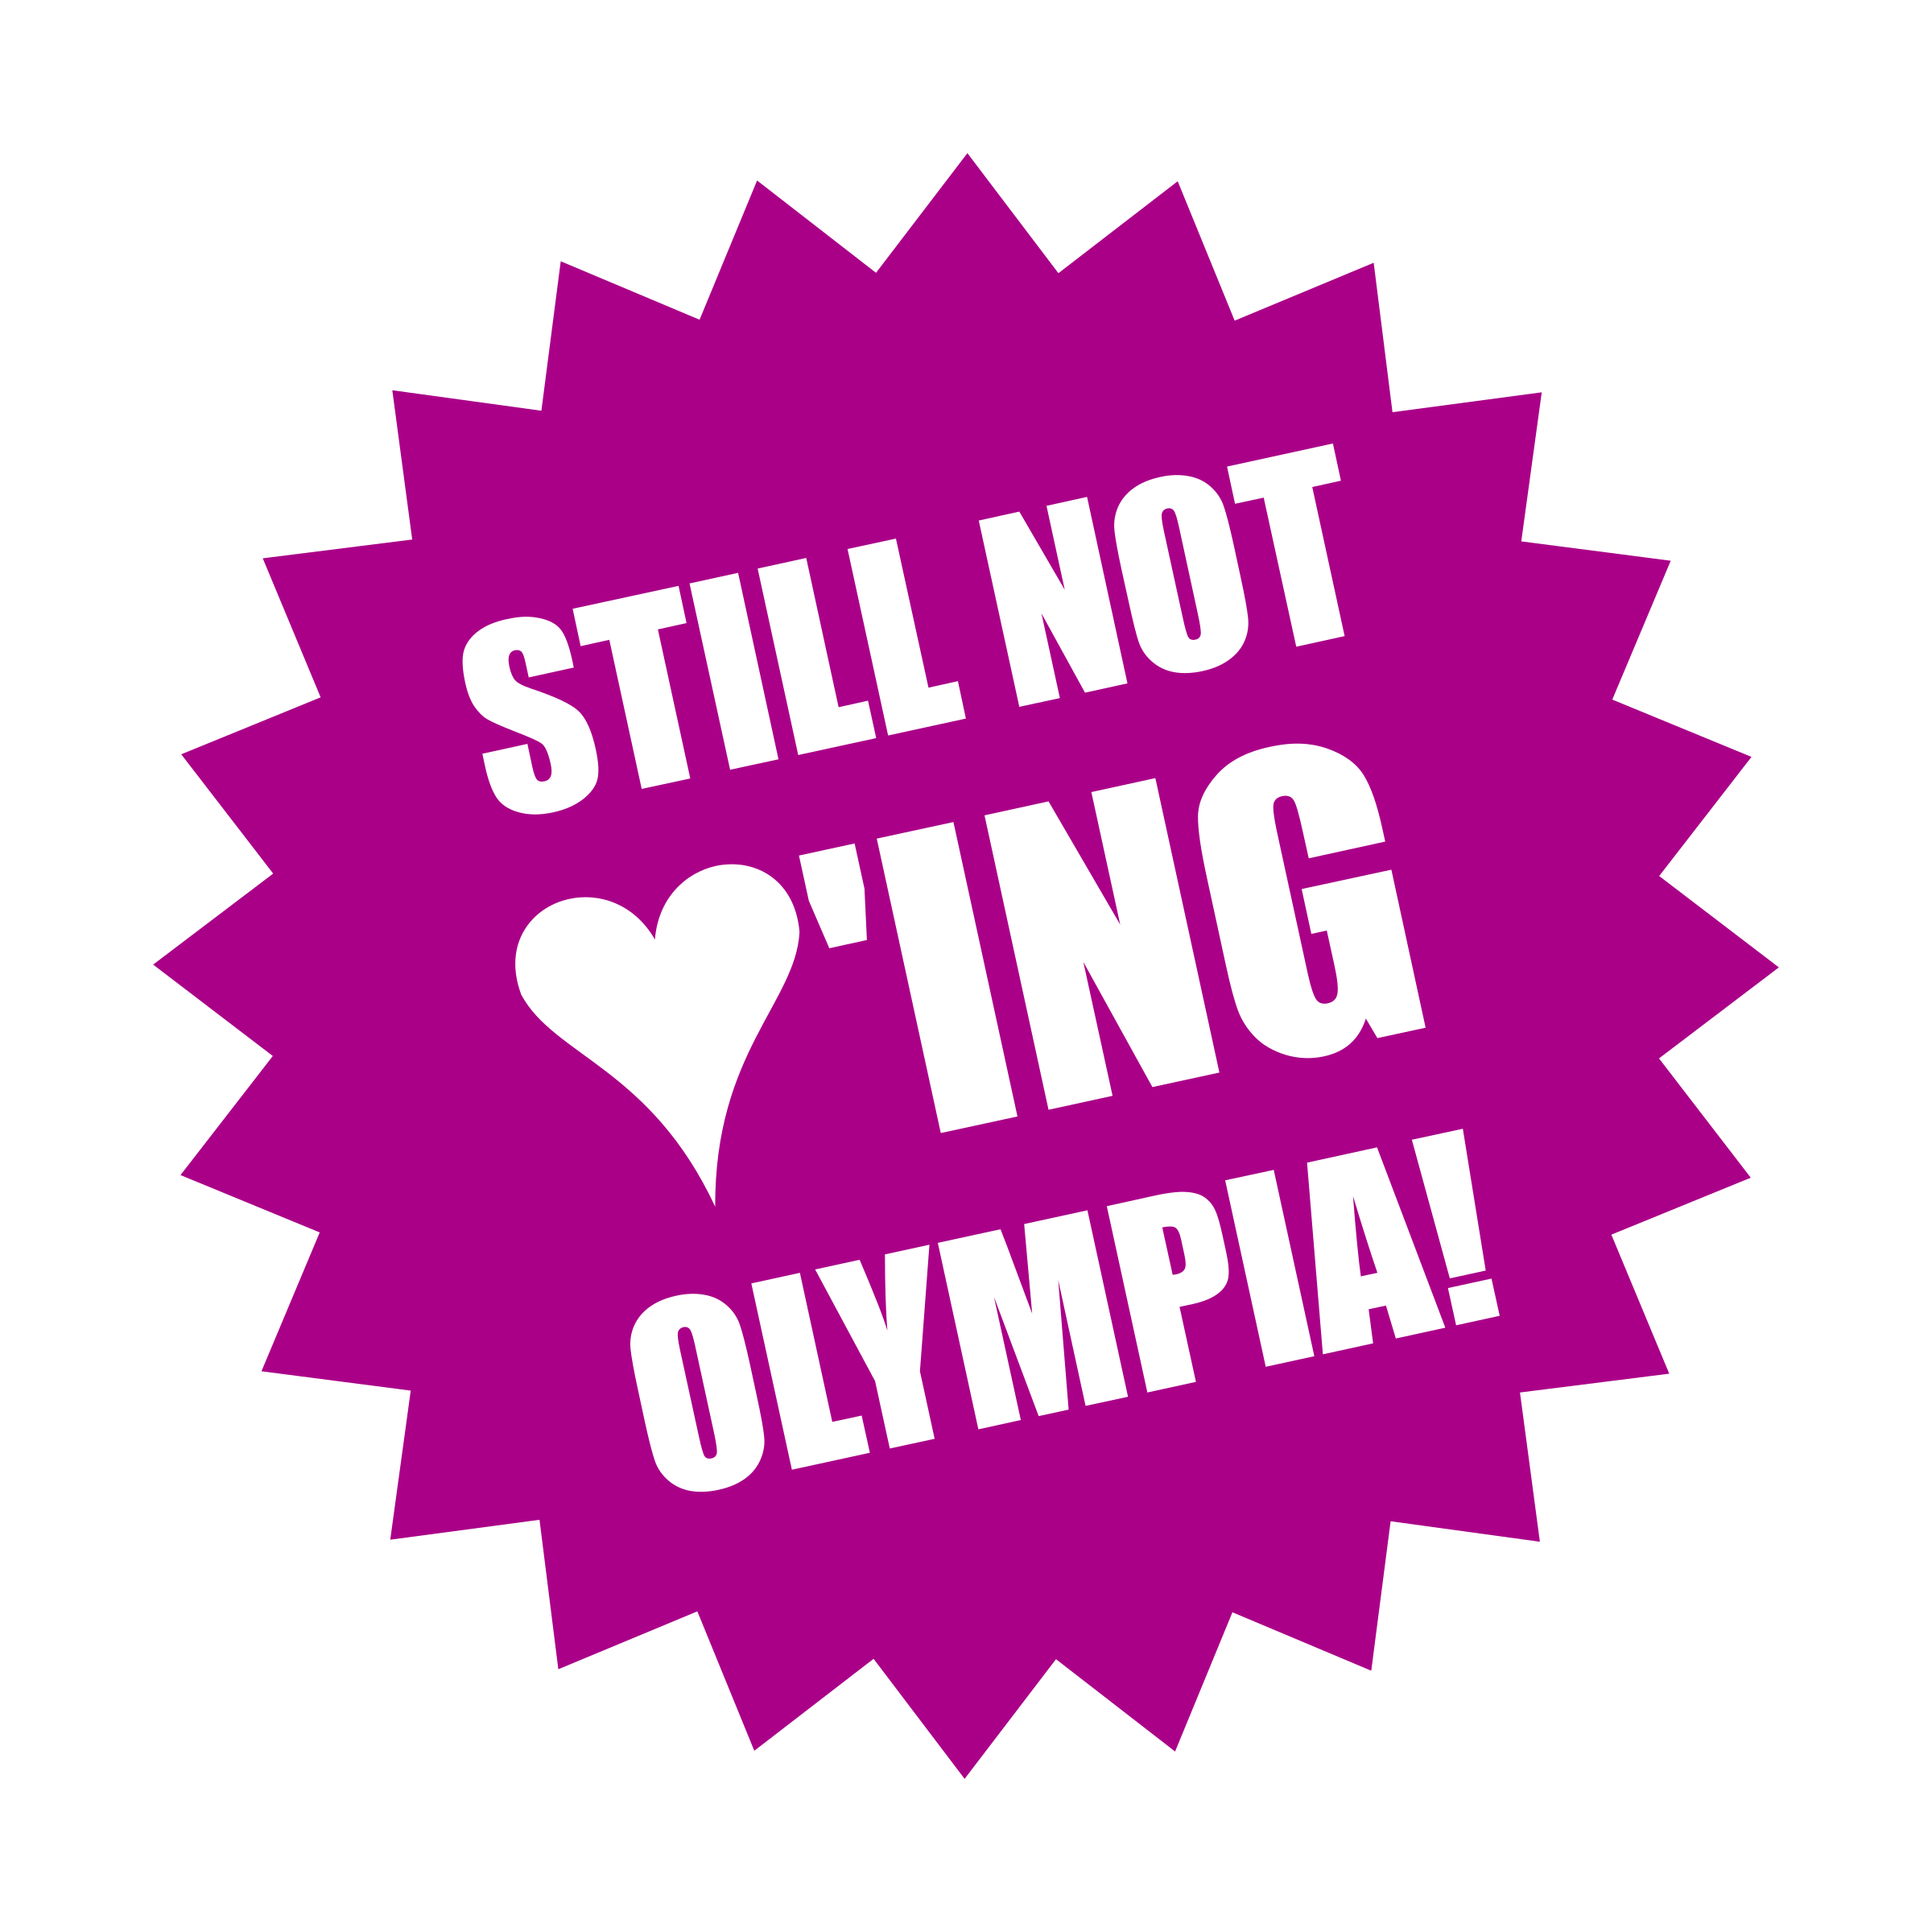 Still not loving Olympia by worker